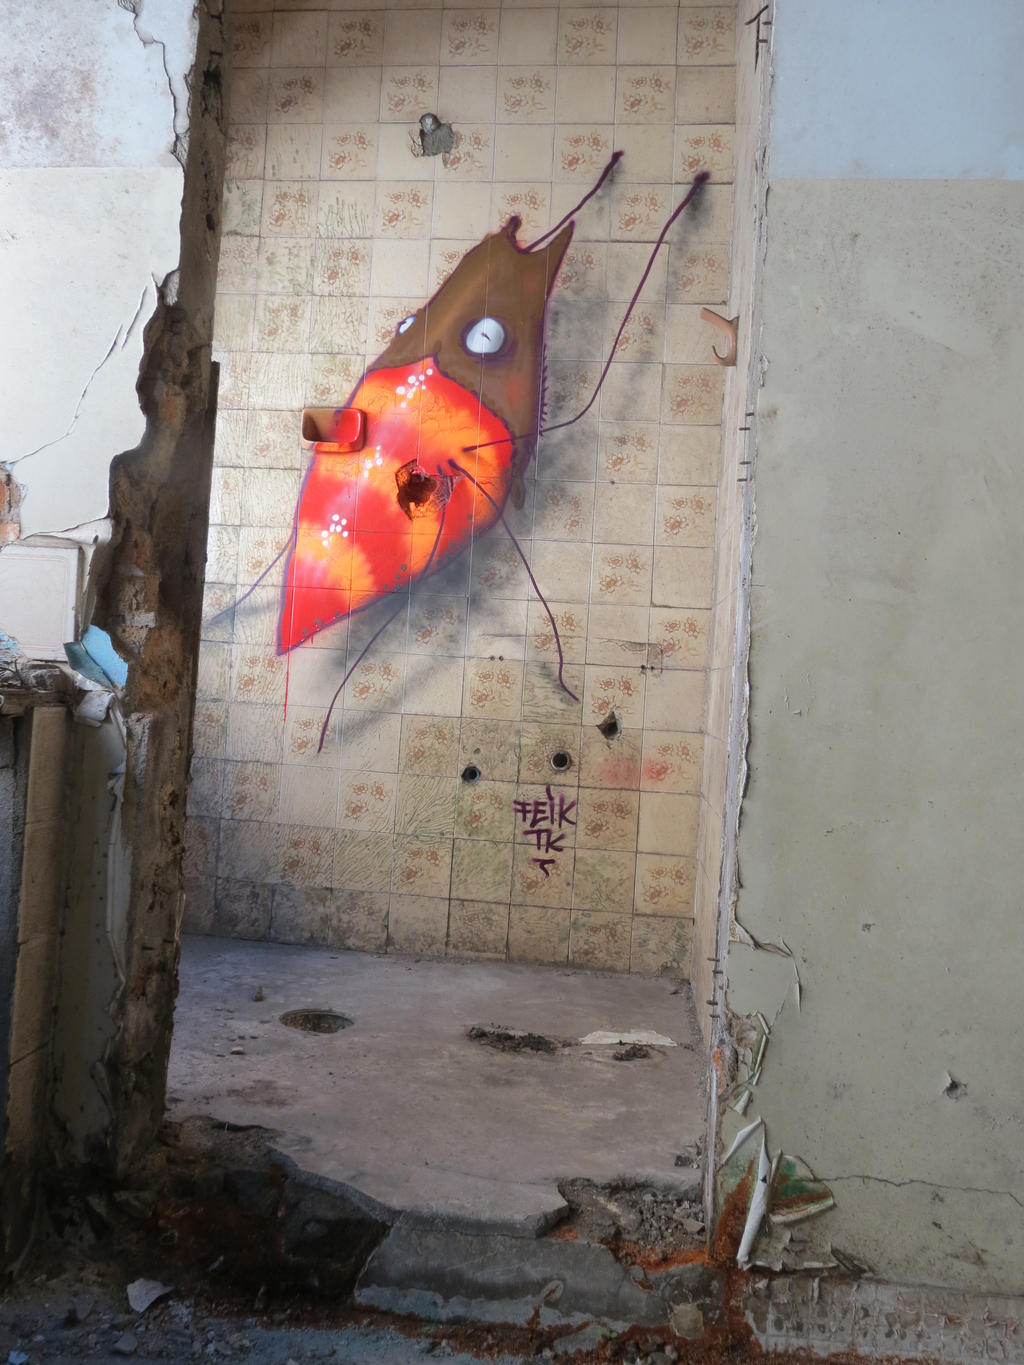 insects by feik-graffiti